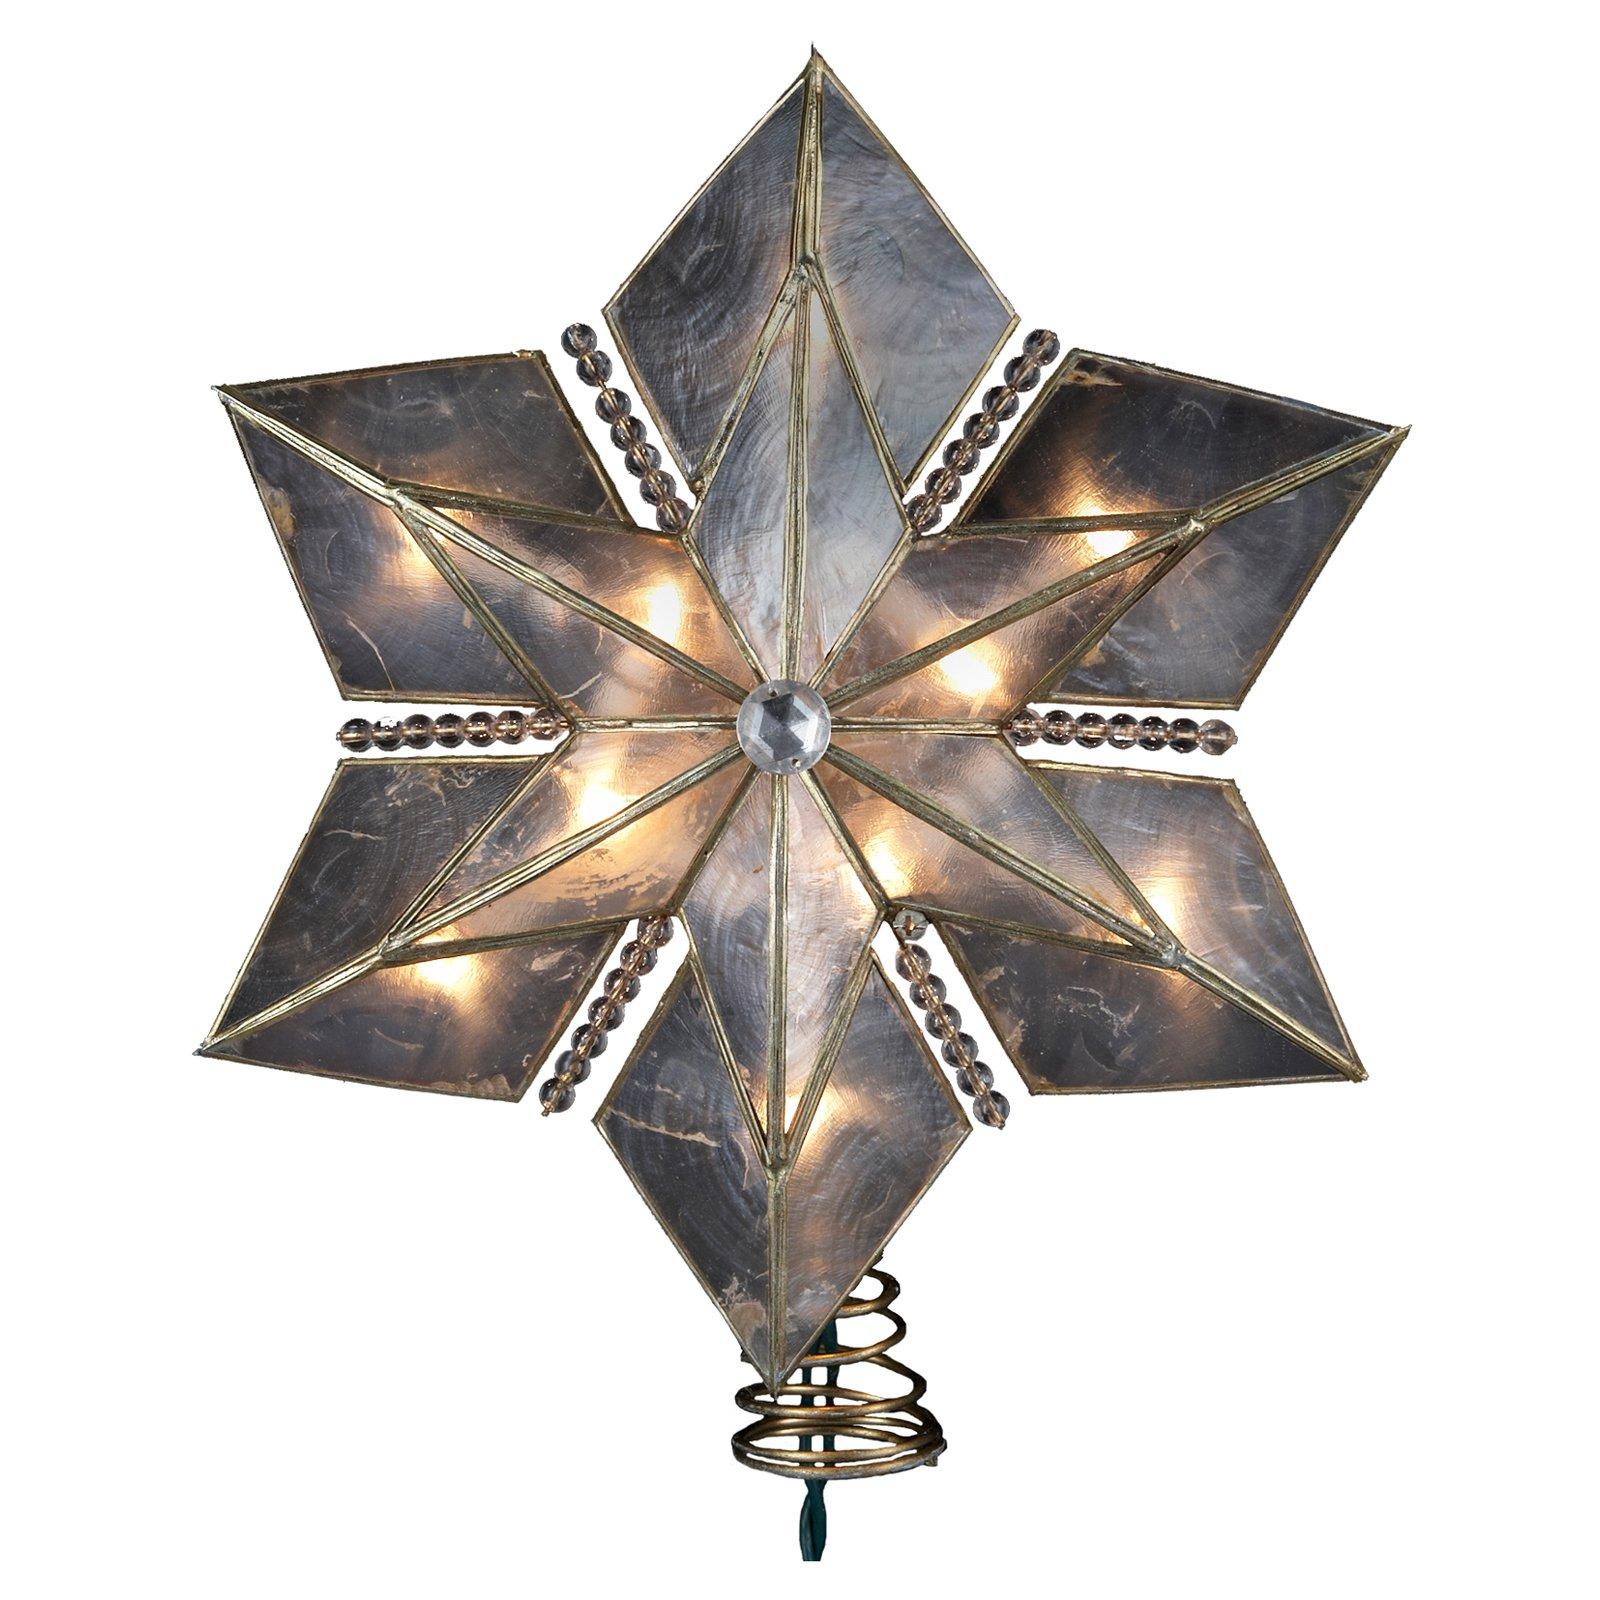 Kurt Adler 10-Light 15-Inch 6-Point Large Capiz Gold Star Treetop